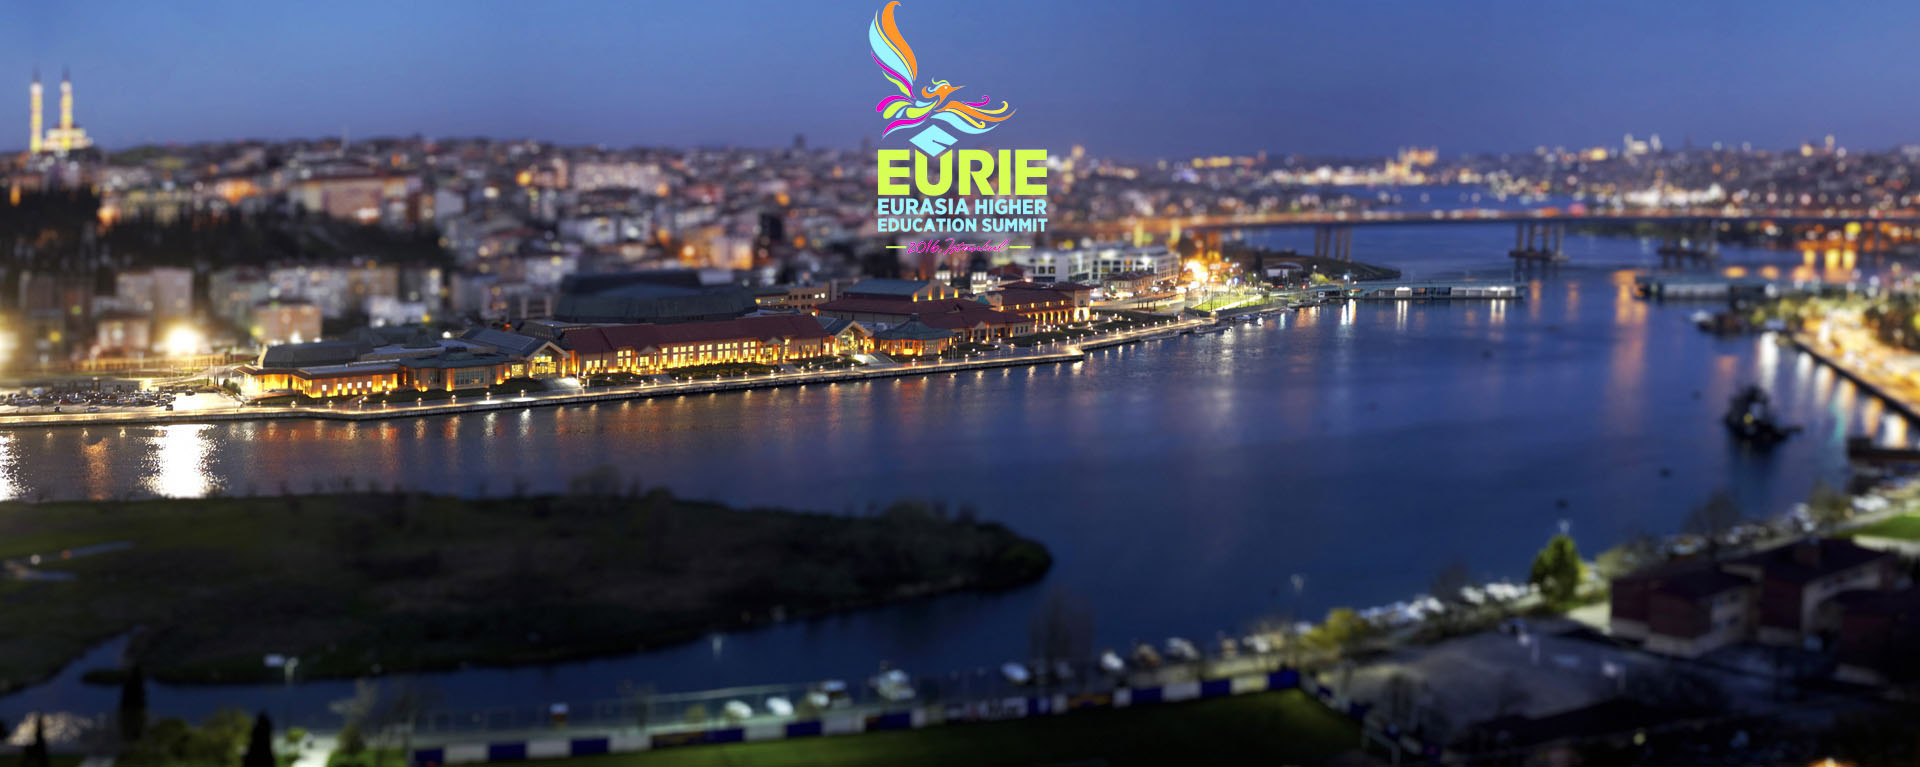 EURIE, Abdullah Gül University, Discovering New Horizons, 2016, Eurasia, Higher Education, Summit, Conference, Expo, Istanbul, February, 2016, Haliç Congress Center, Partnerships, universities, Study in Turkey, booth, Pavilion, network, internationalization